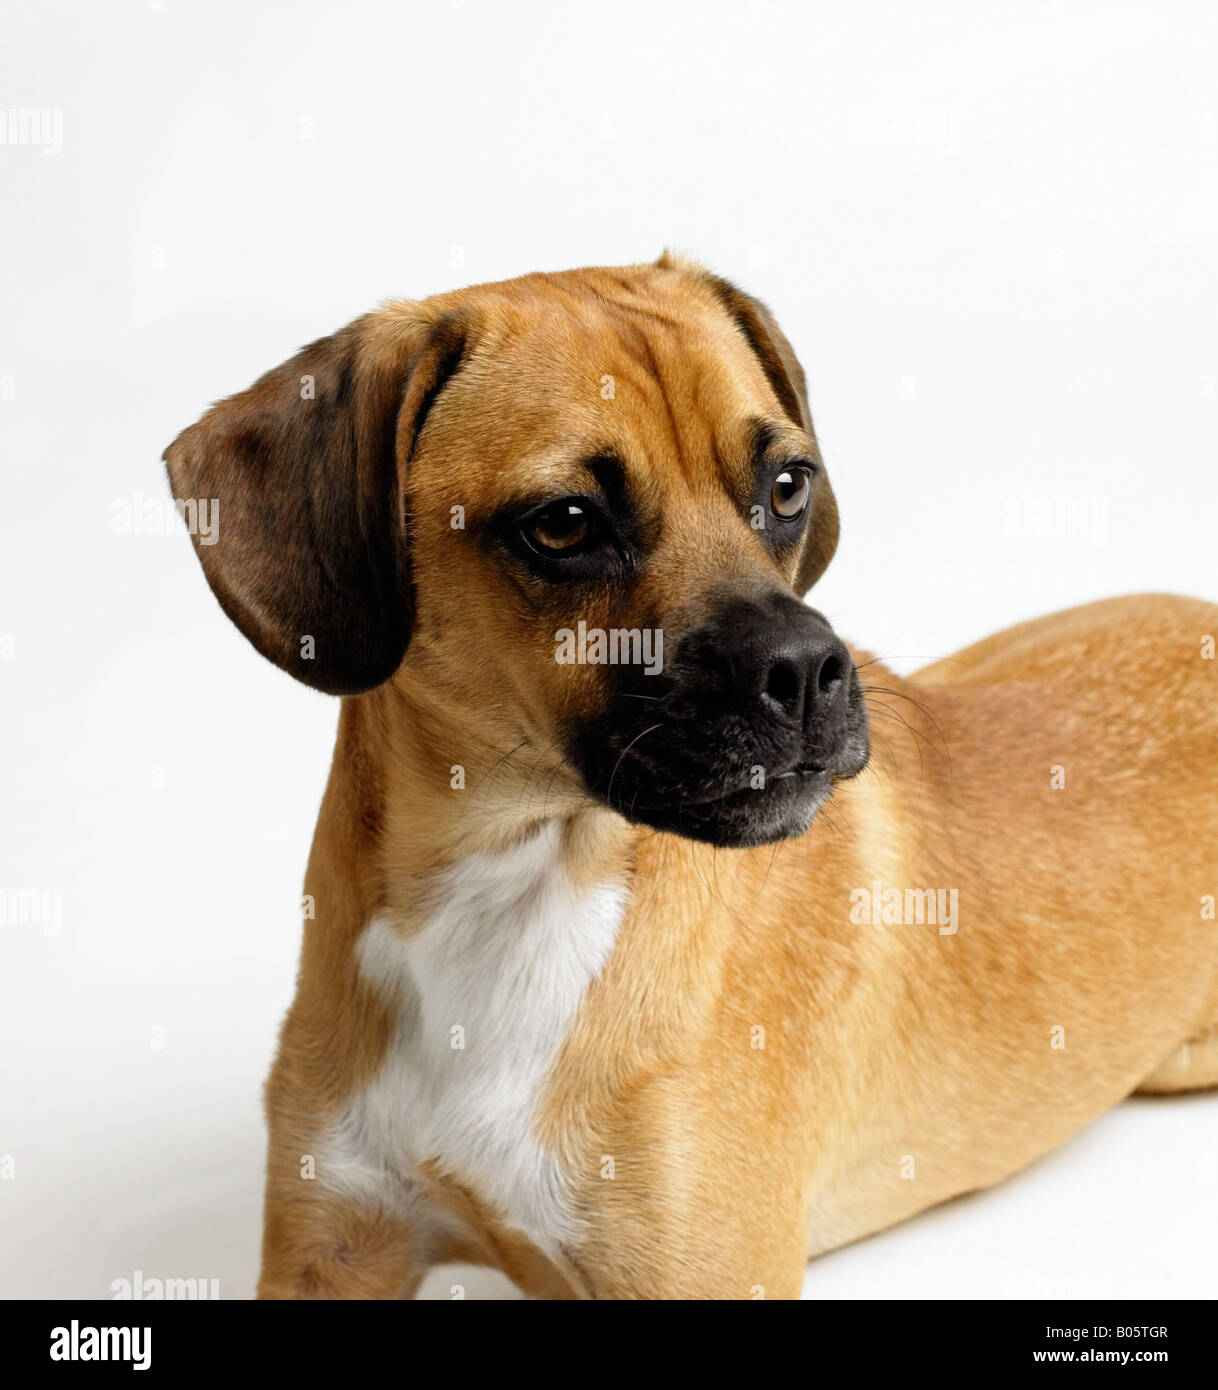 Potrait of a dog Stock Photo